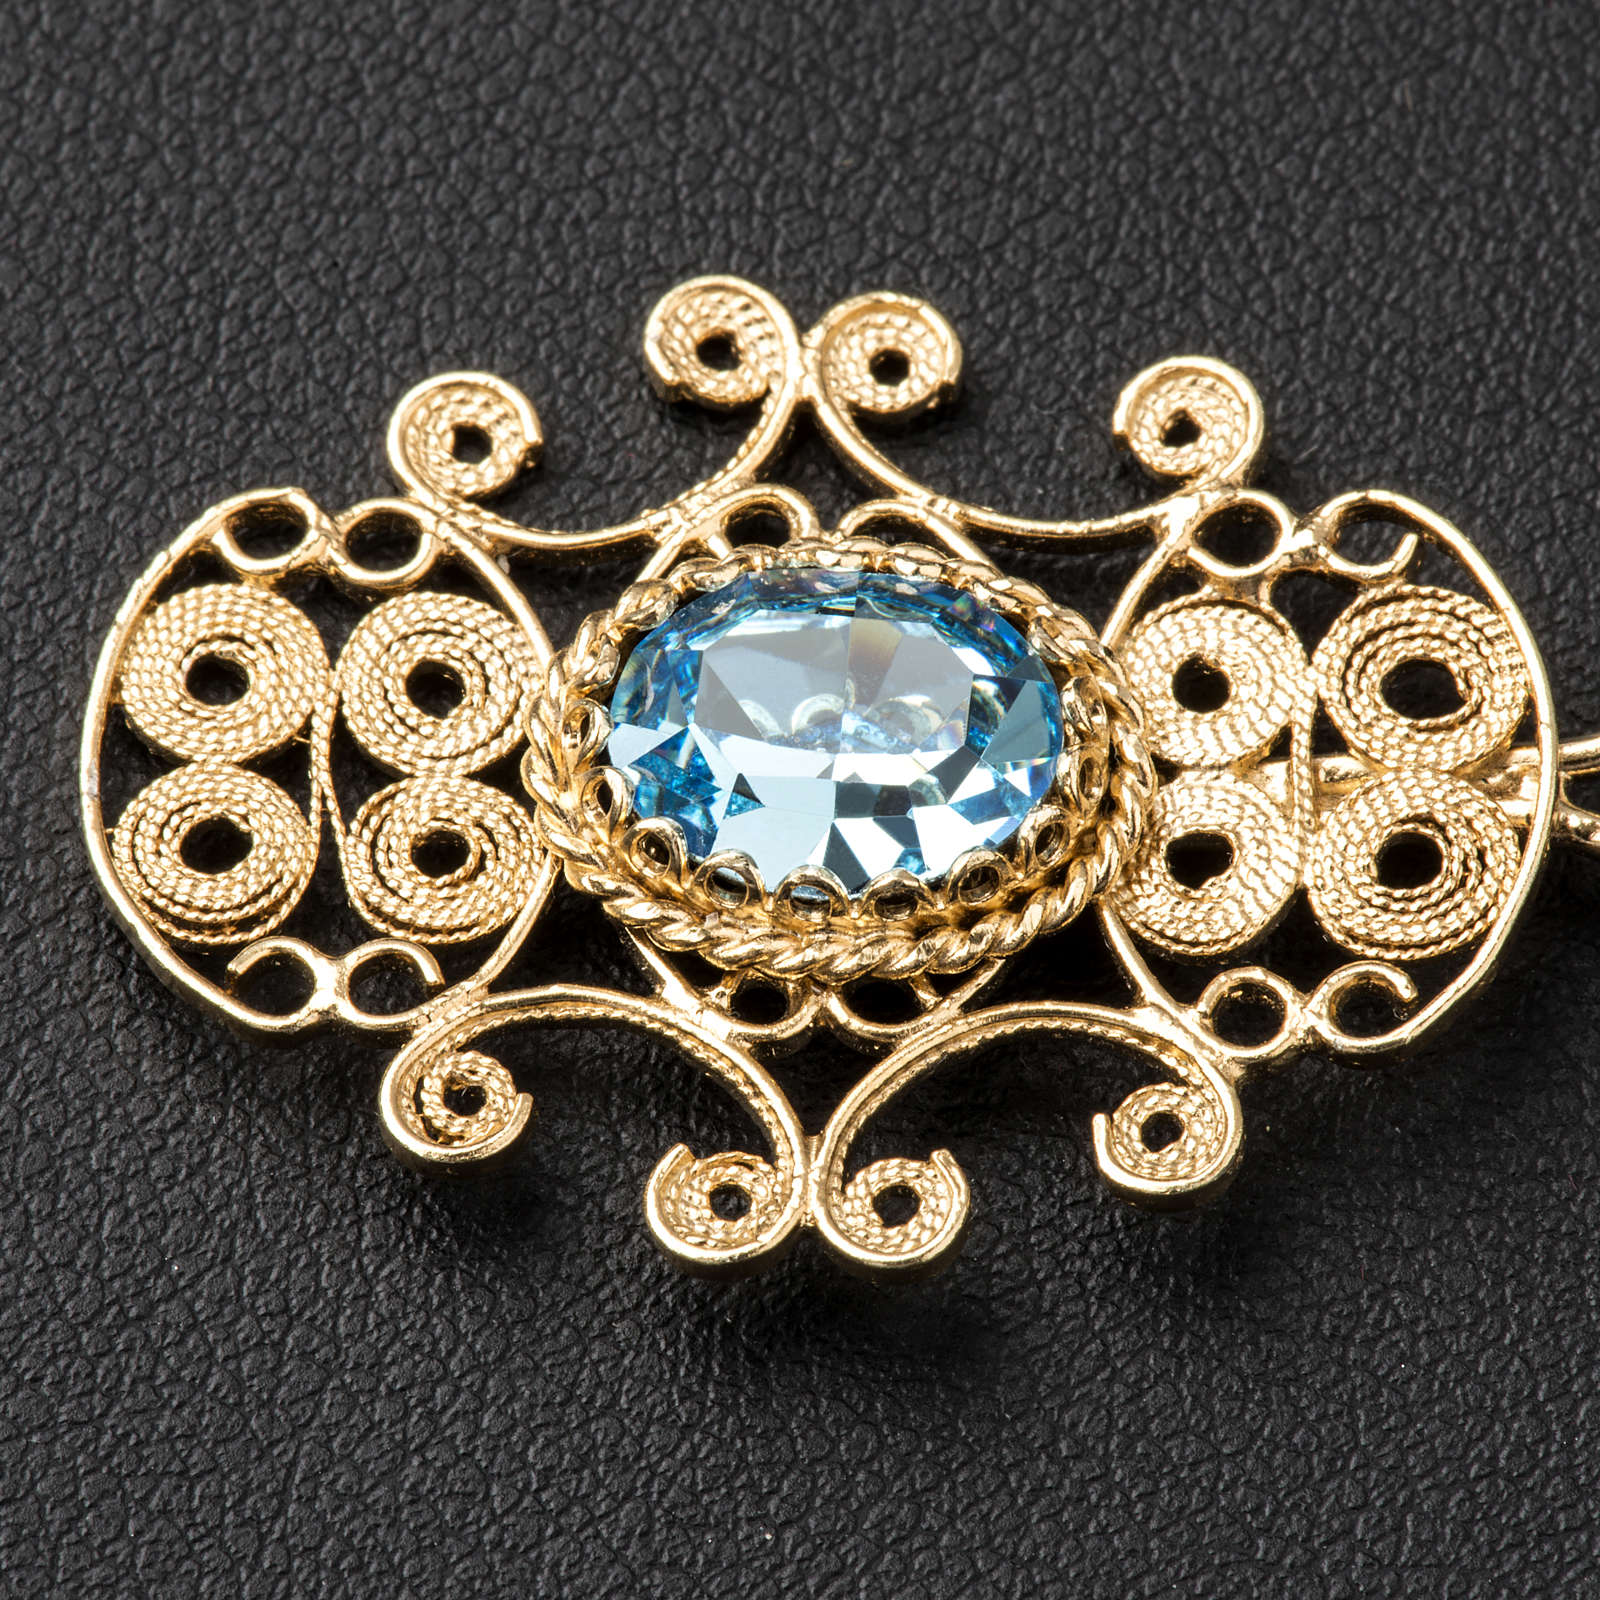 Cope Clasp in silver 800 filigree with blue stone 4